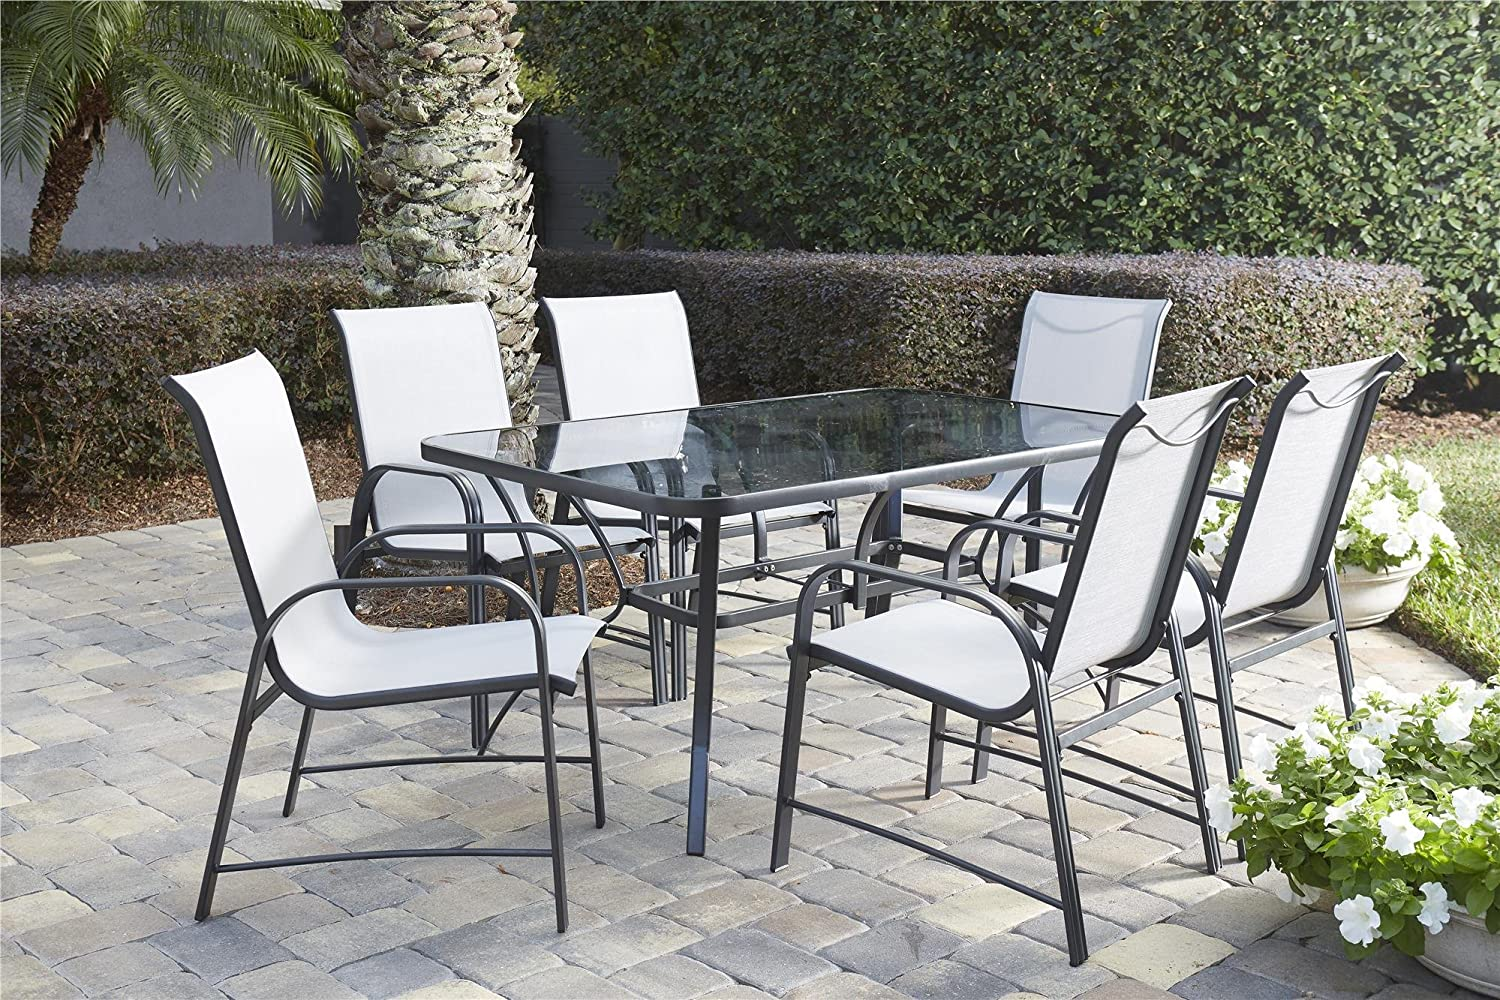 Cosco Outdoor Dining Set, 7 Piece, Gray Frame, Light Gray Sling